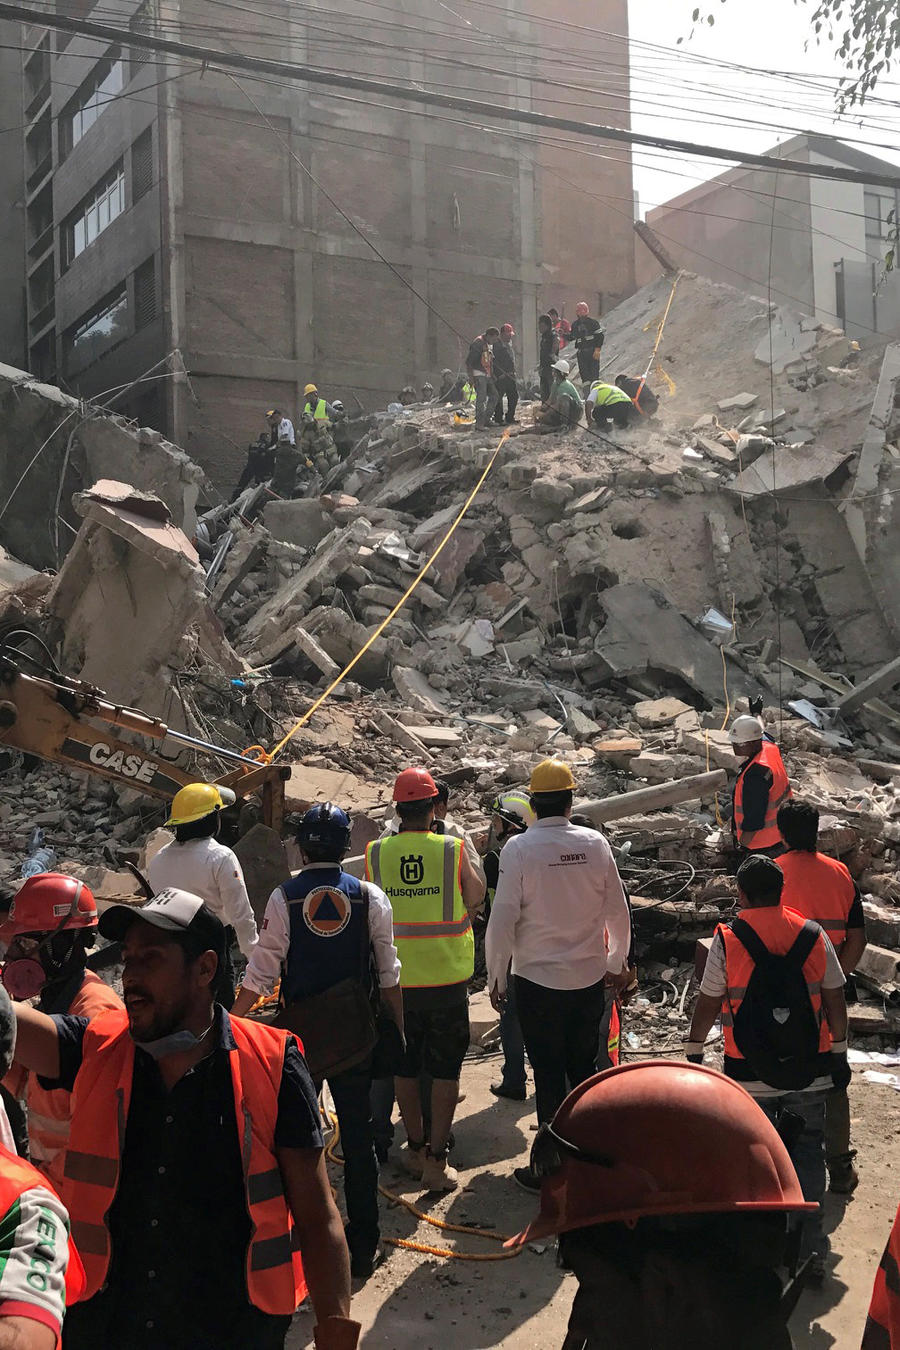 People clear rubble after an earthquake hit Mexico City, Mexico